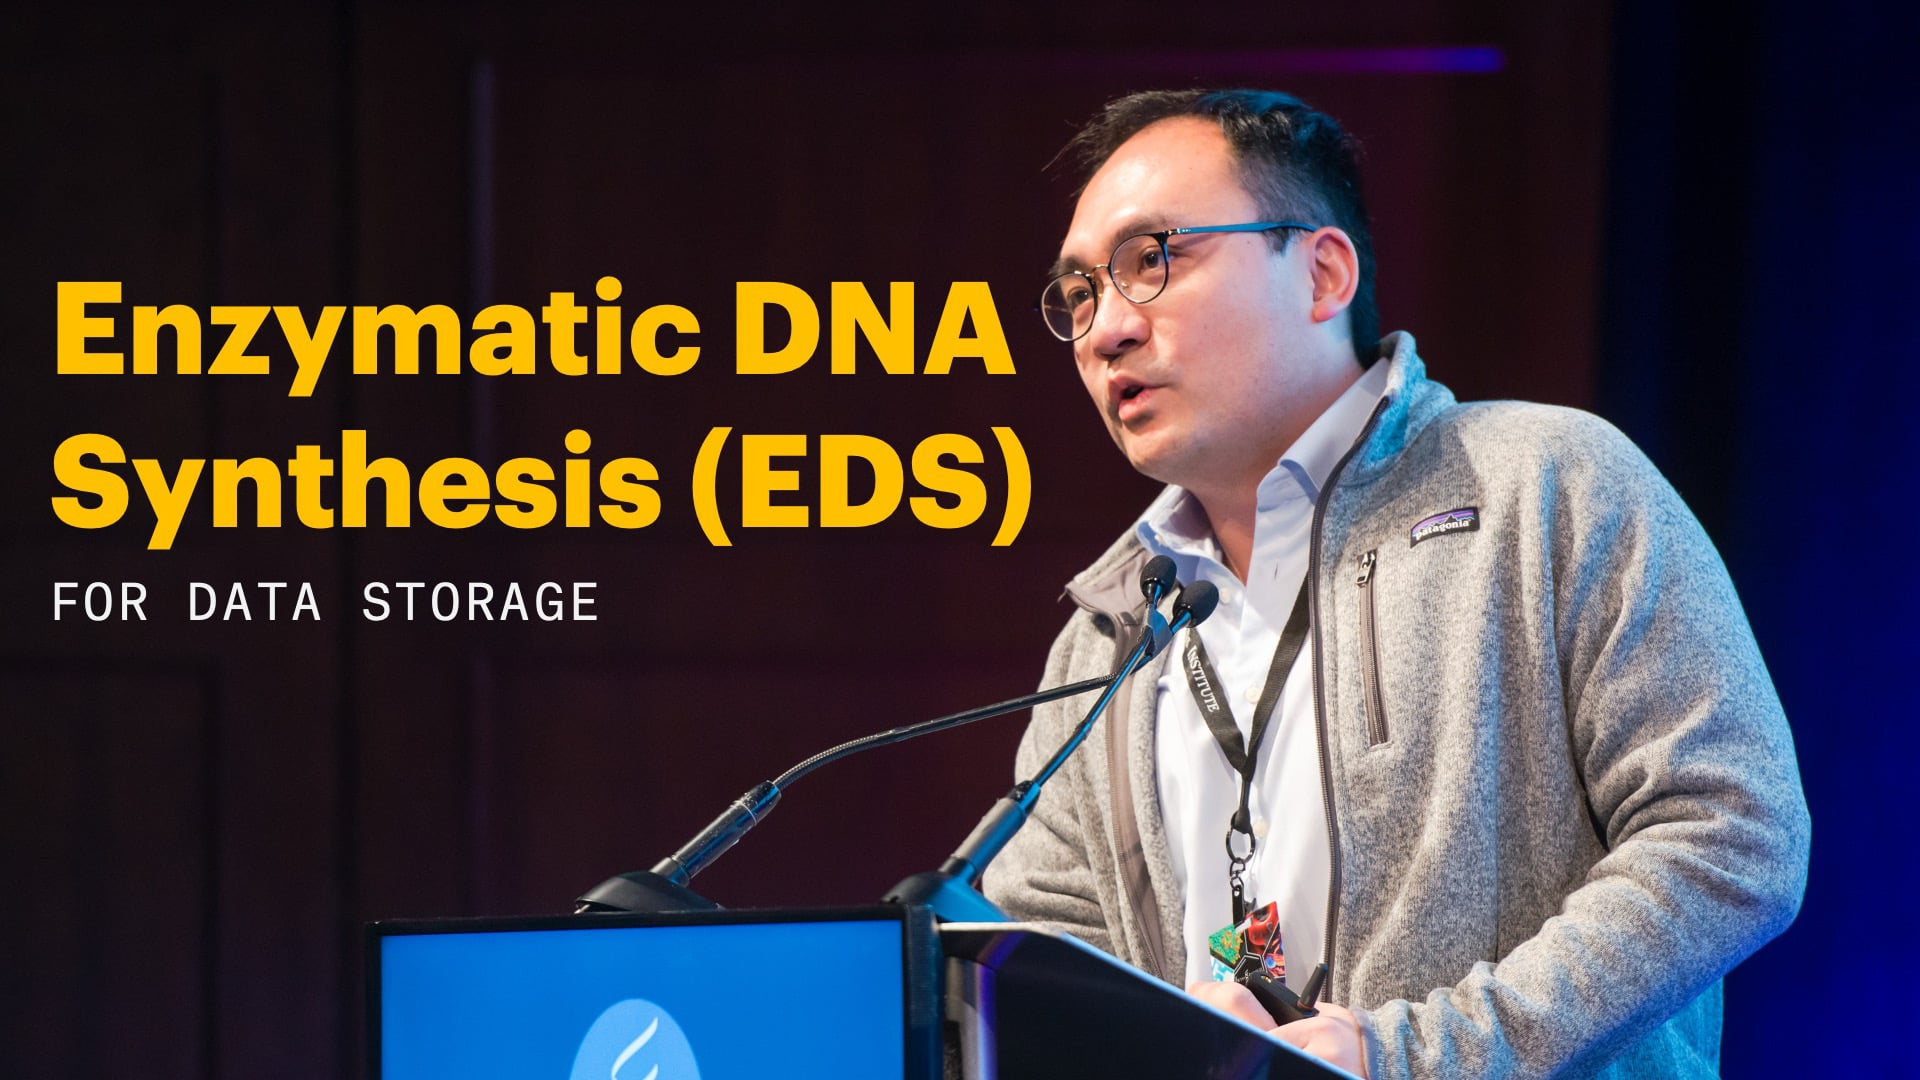 Enzymatic DNA Synthesis (EDS) for Data Storage